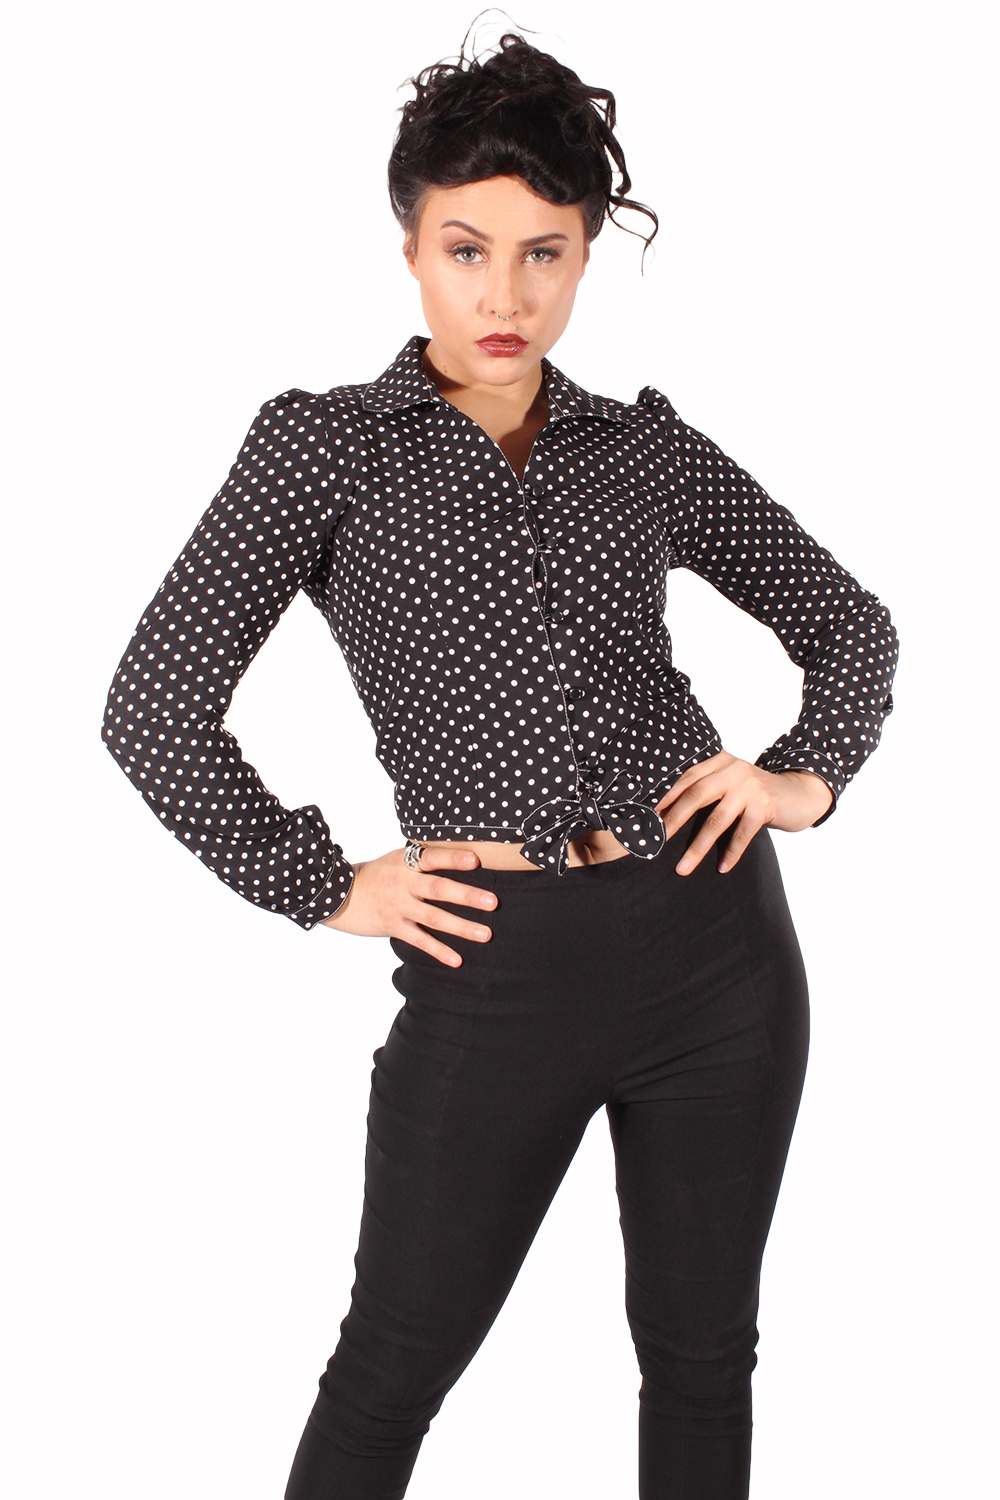 Polka Dots PIN UP retro rockabilly langarm Wickel Bluse Kurzbluse